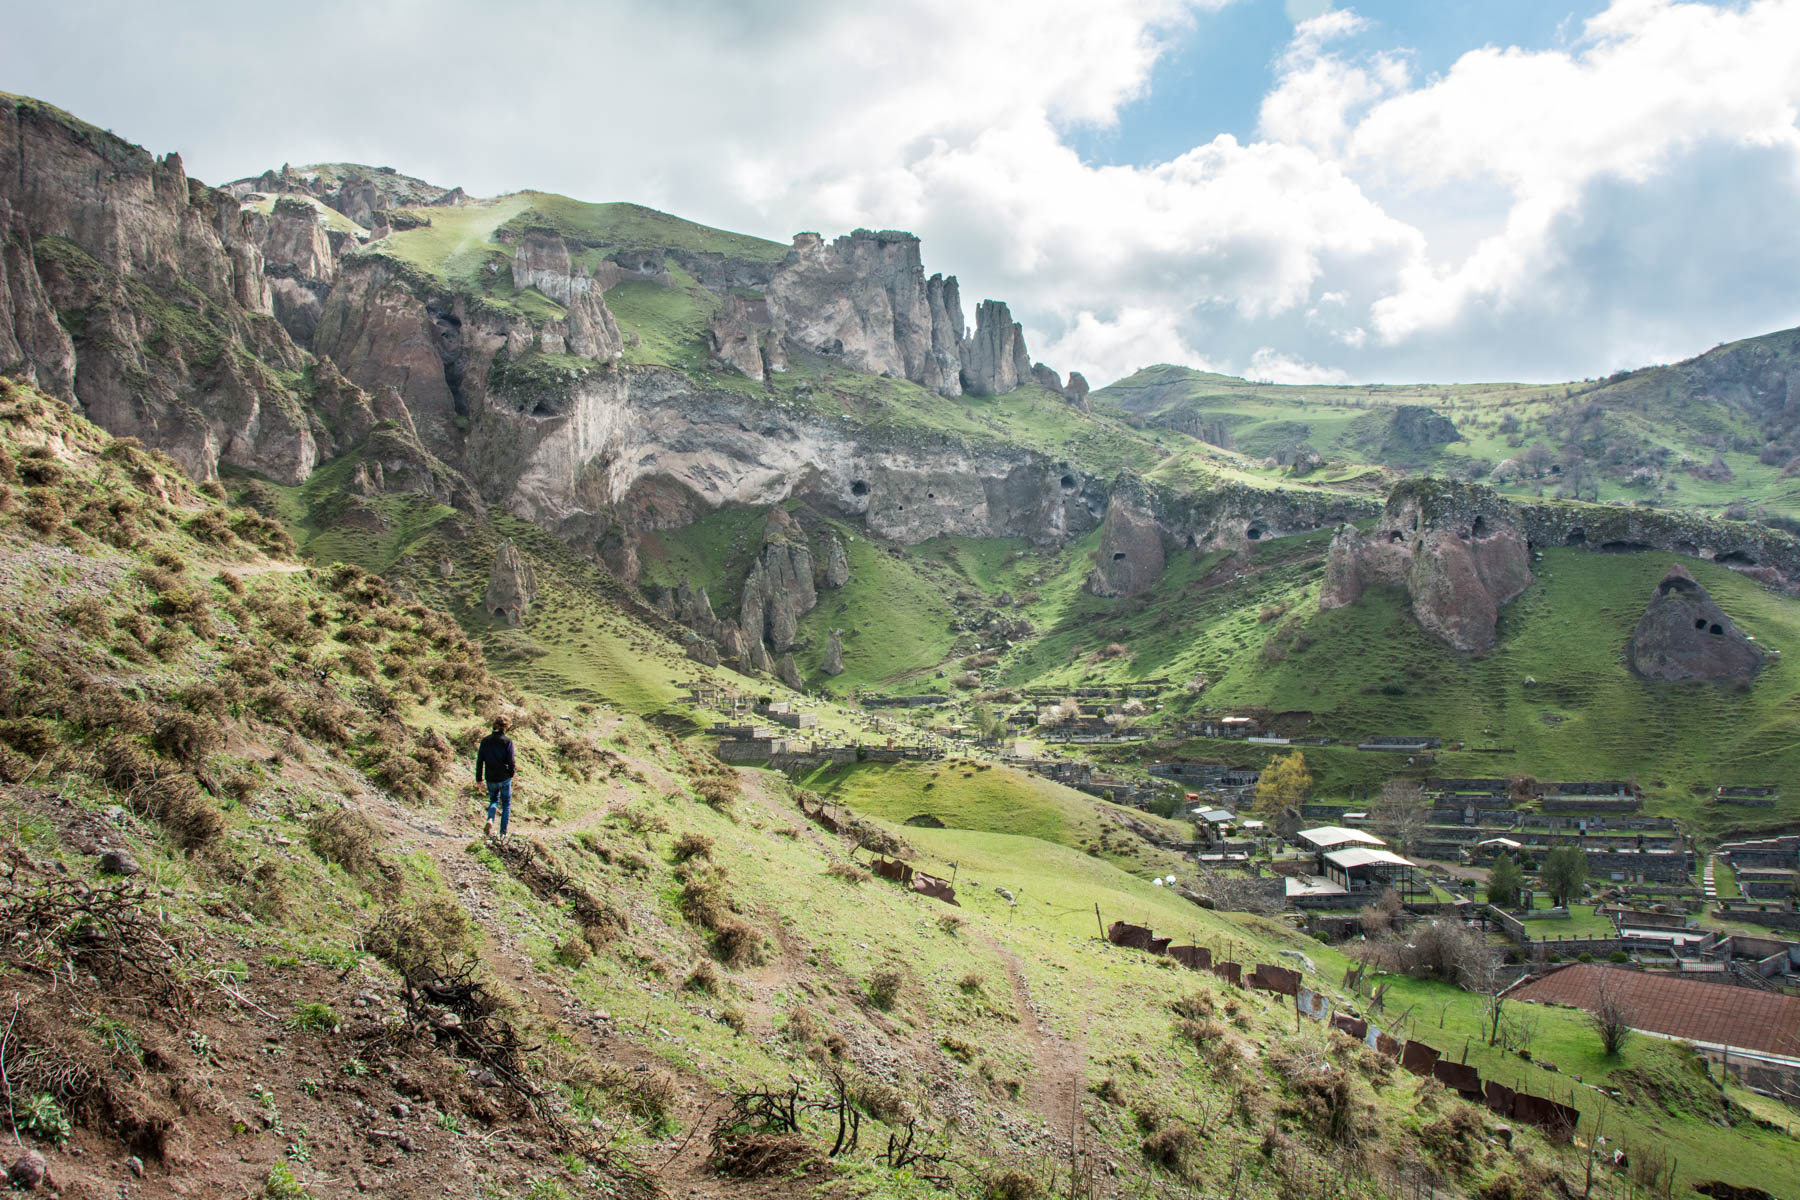 Sebastiaan exploring the rocky surroundings of Goris, Armenia - Lost With Purpose